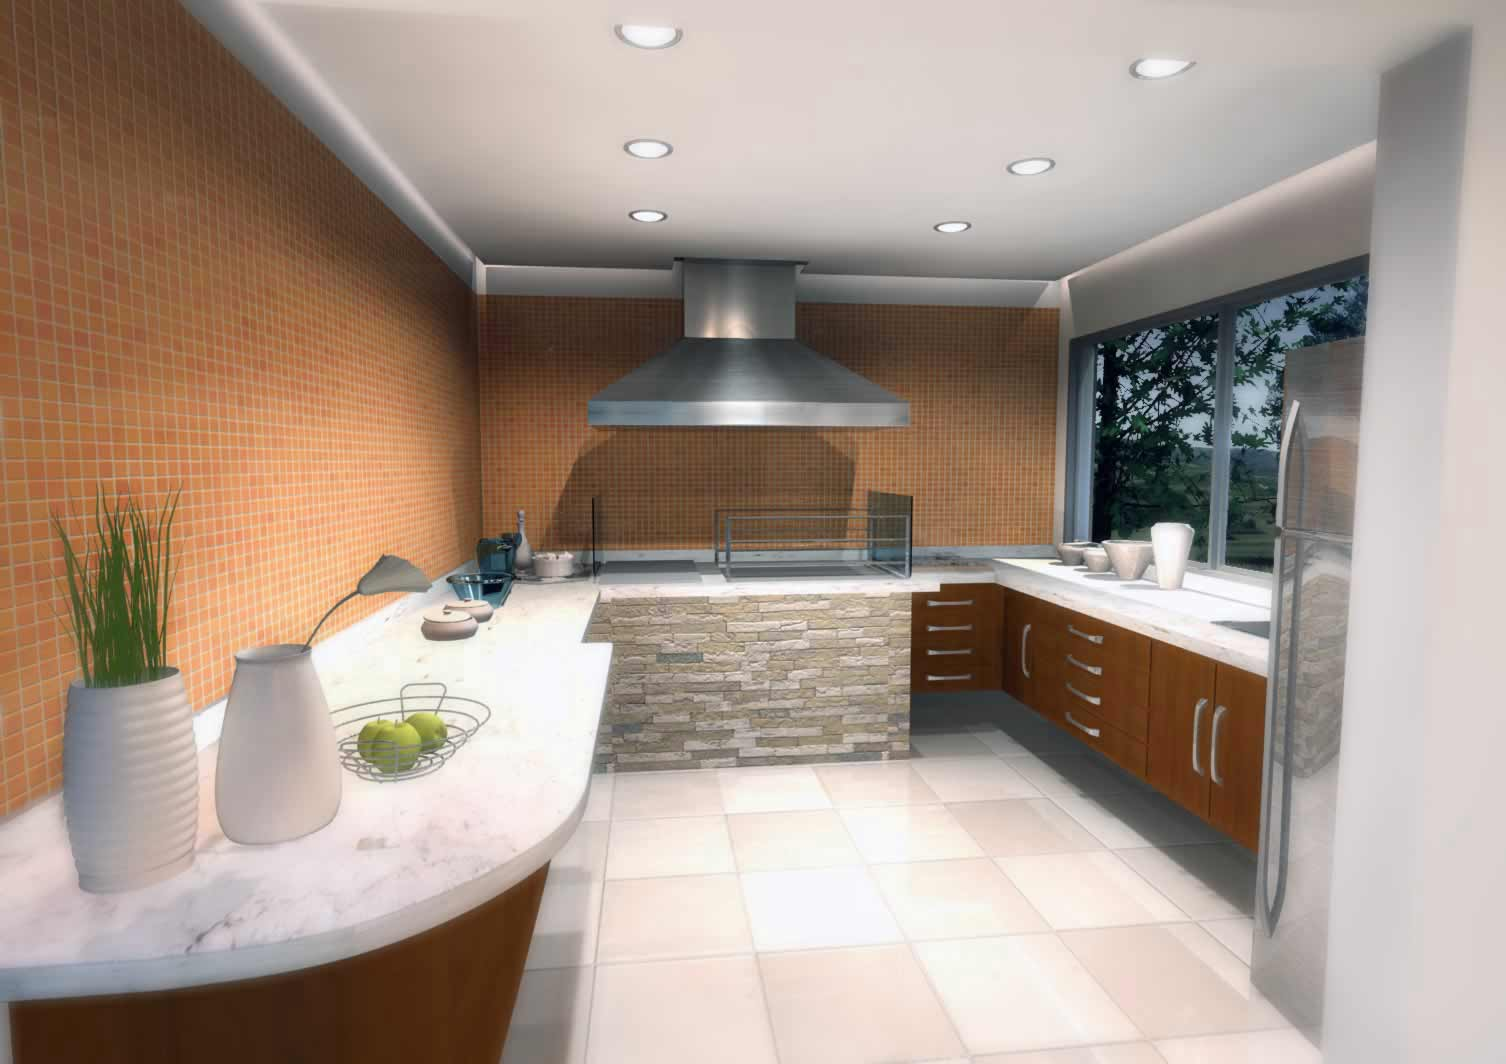 Modern White Tile Kitchen Flooring